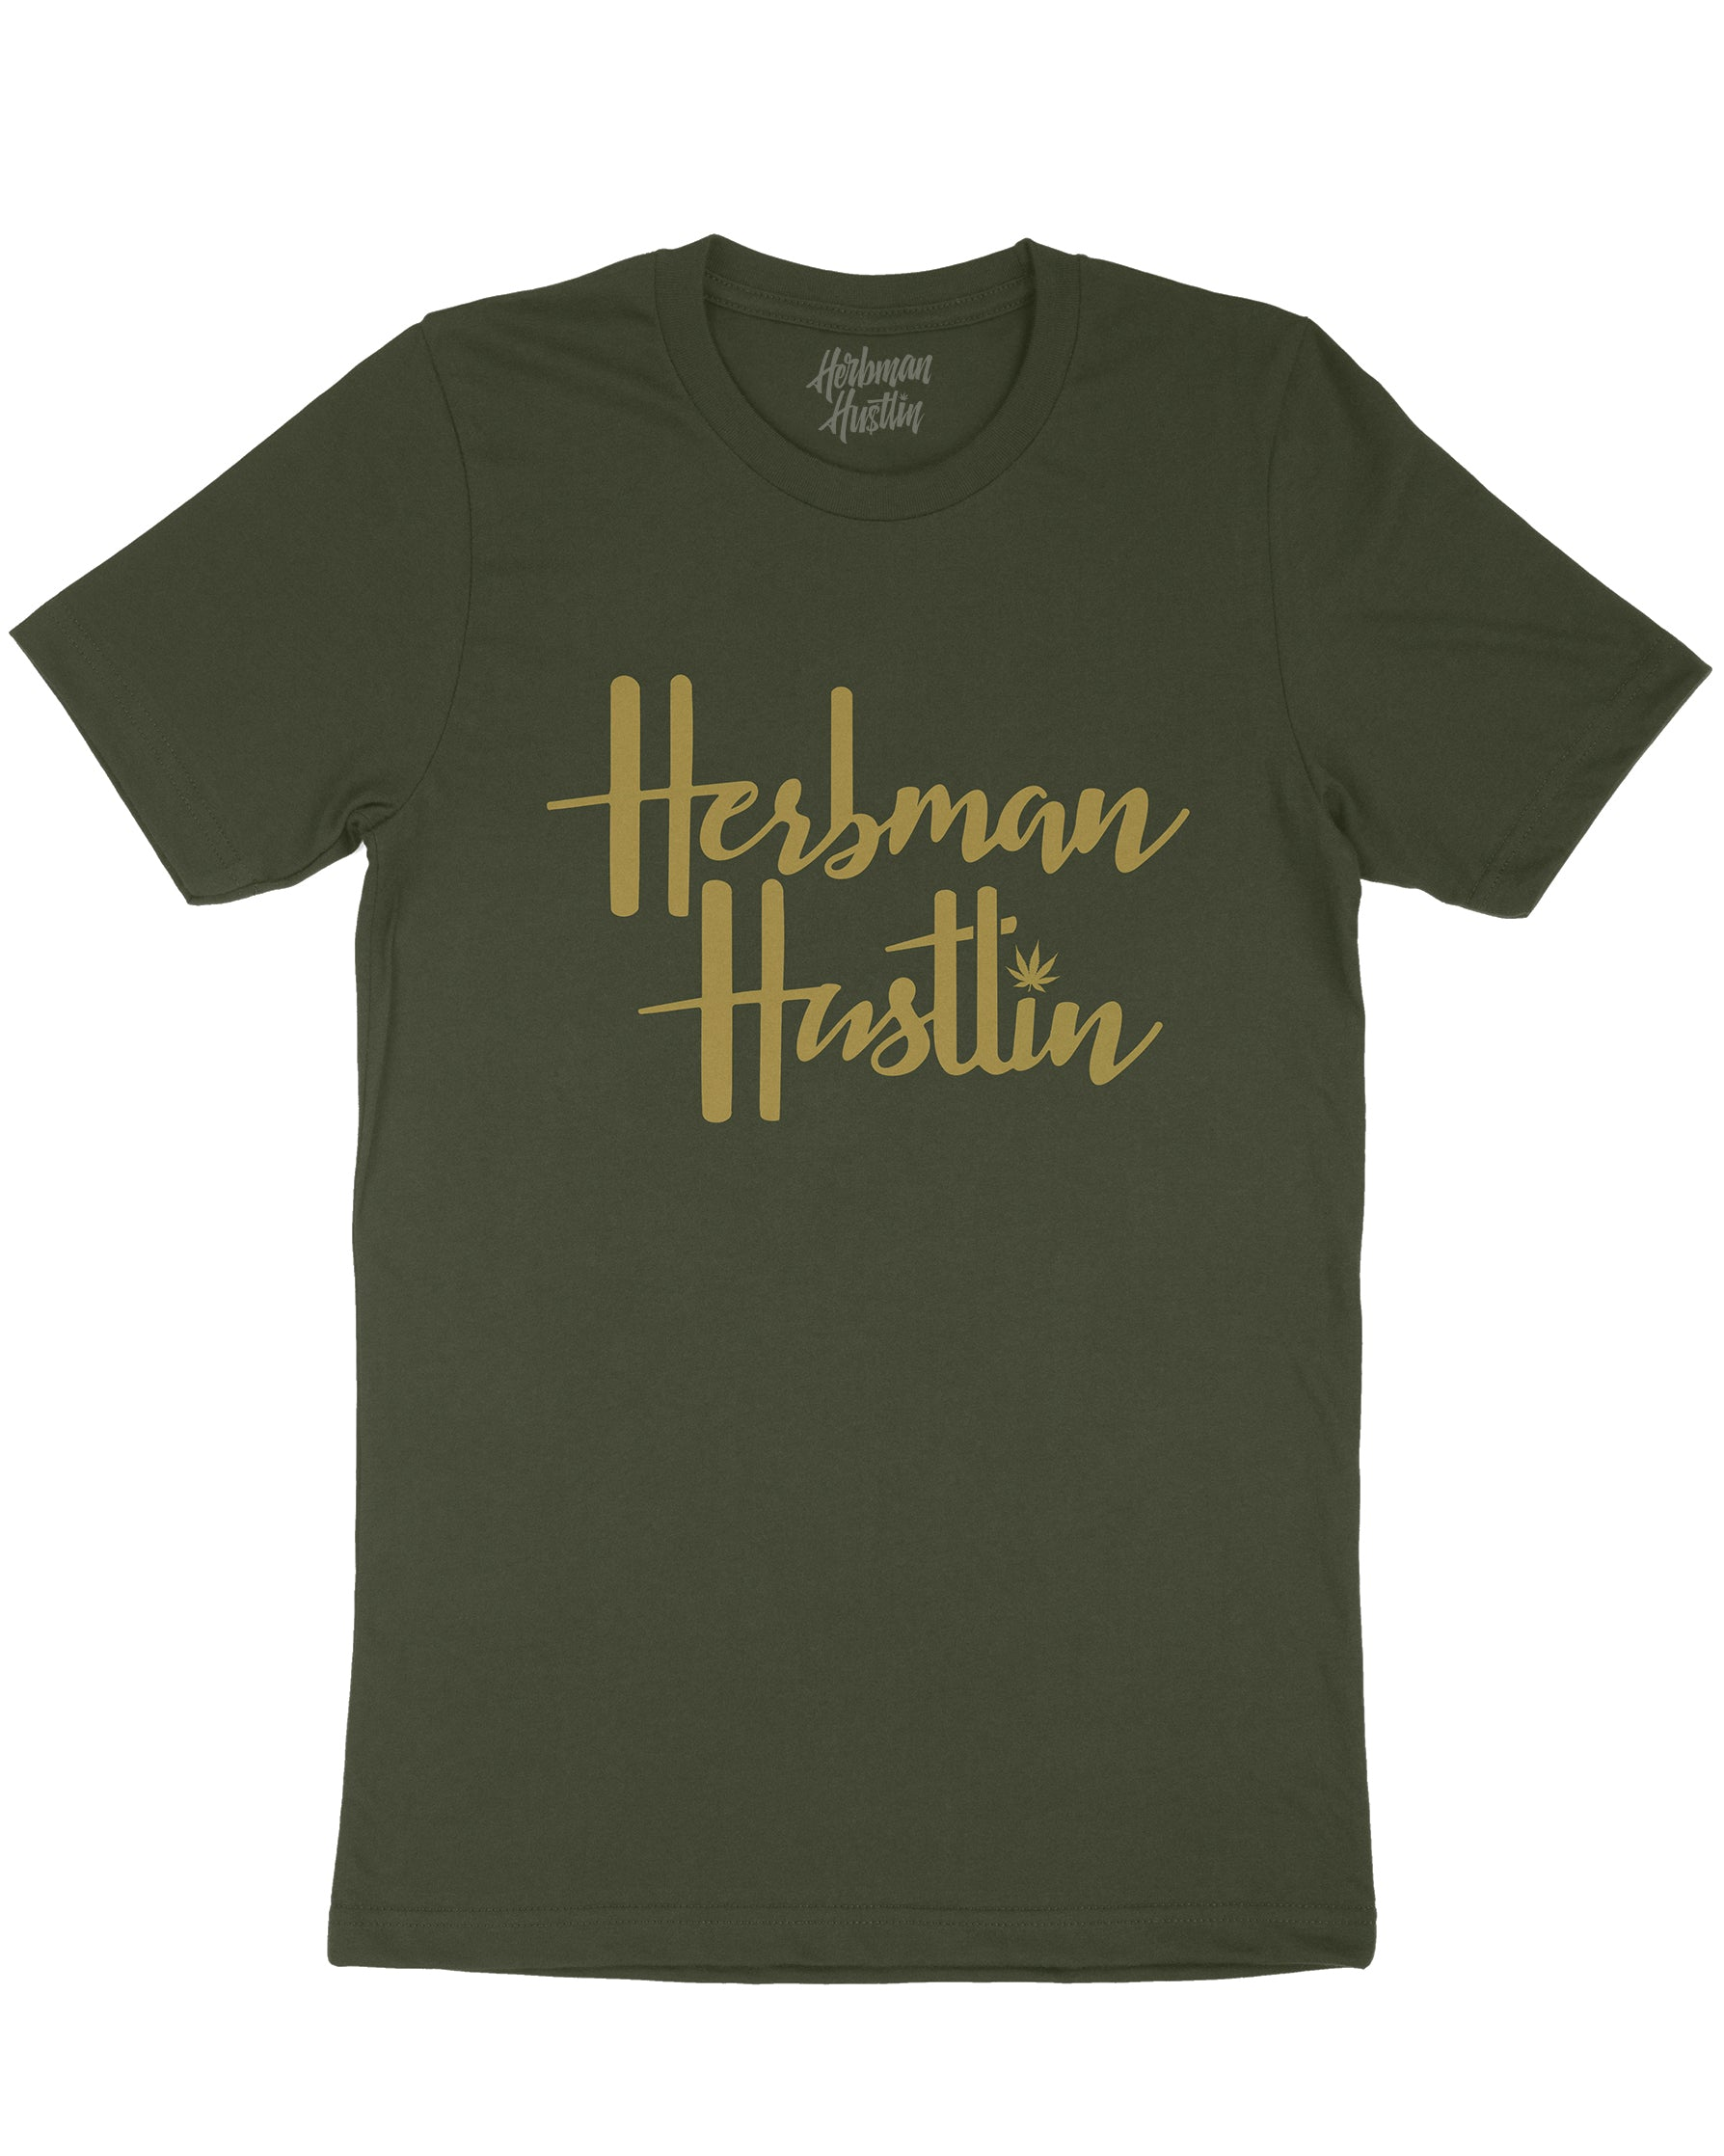 Herbman Hustlin 'It's a London Thing' LIMITED EDITION Tee - Green/Gold - Front